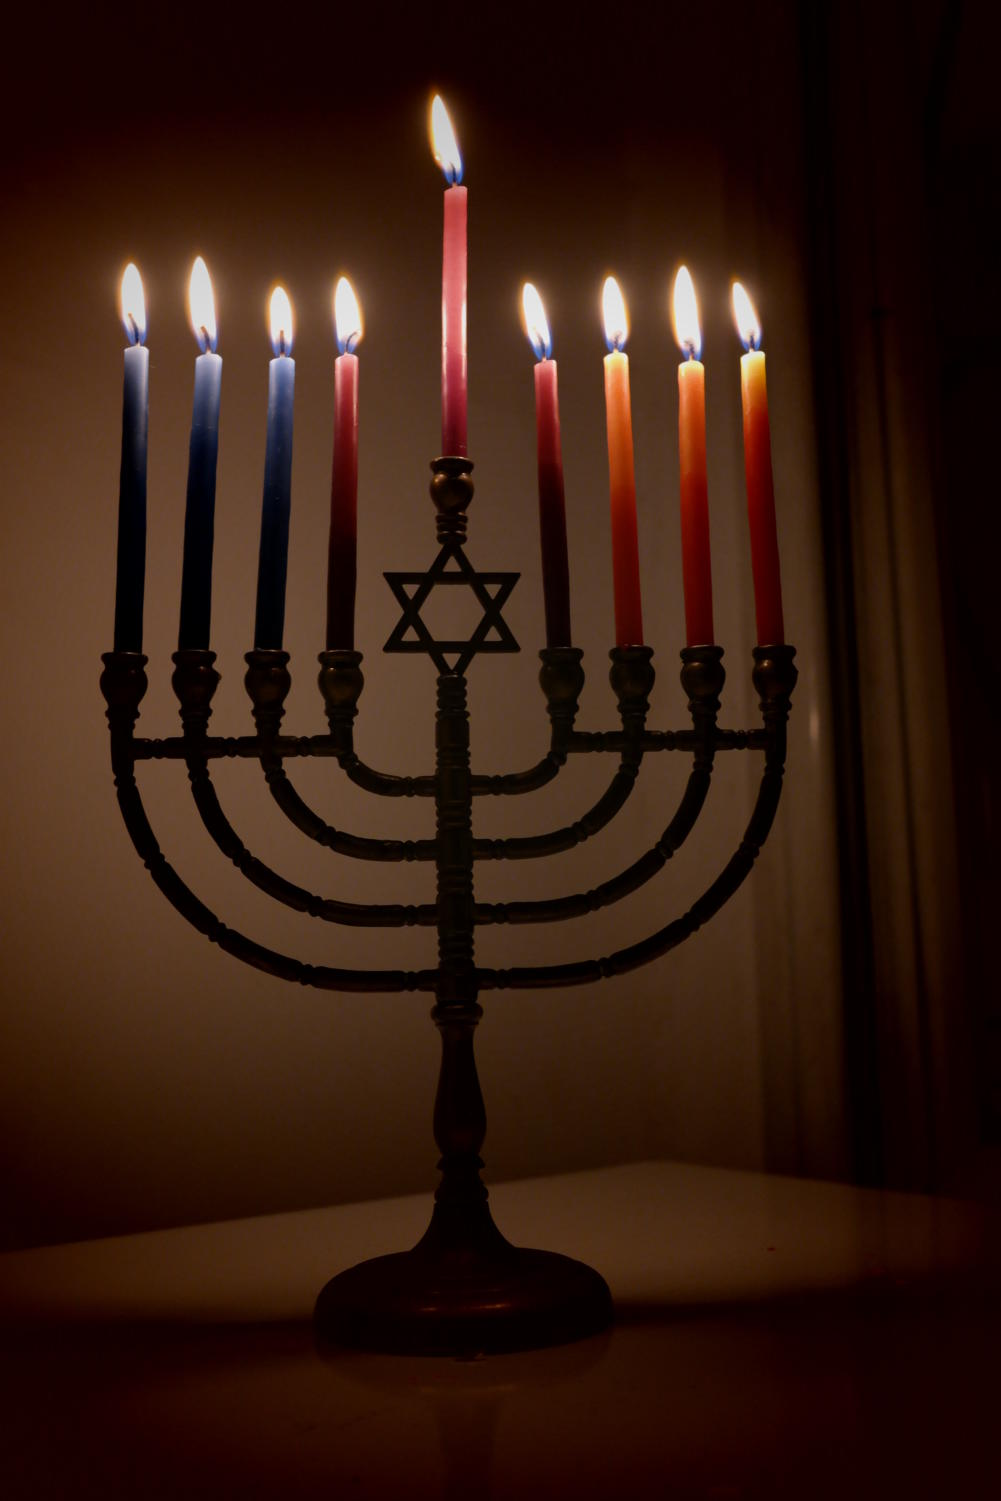 After every candle is lit, a family prepares to celebrate before Hanukkah ends.